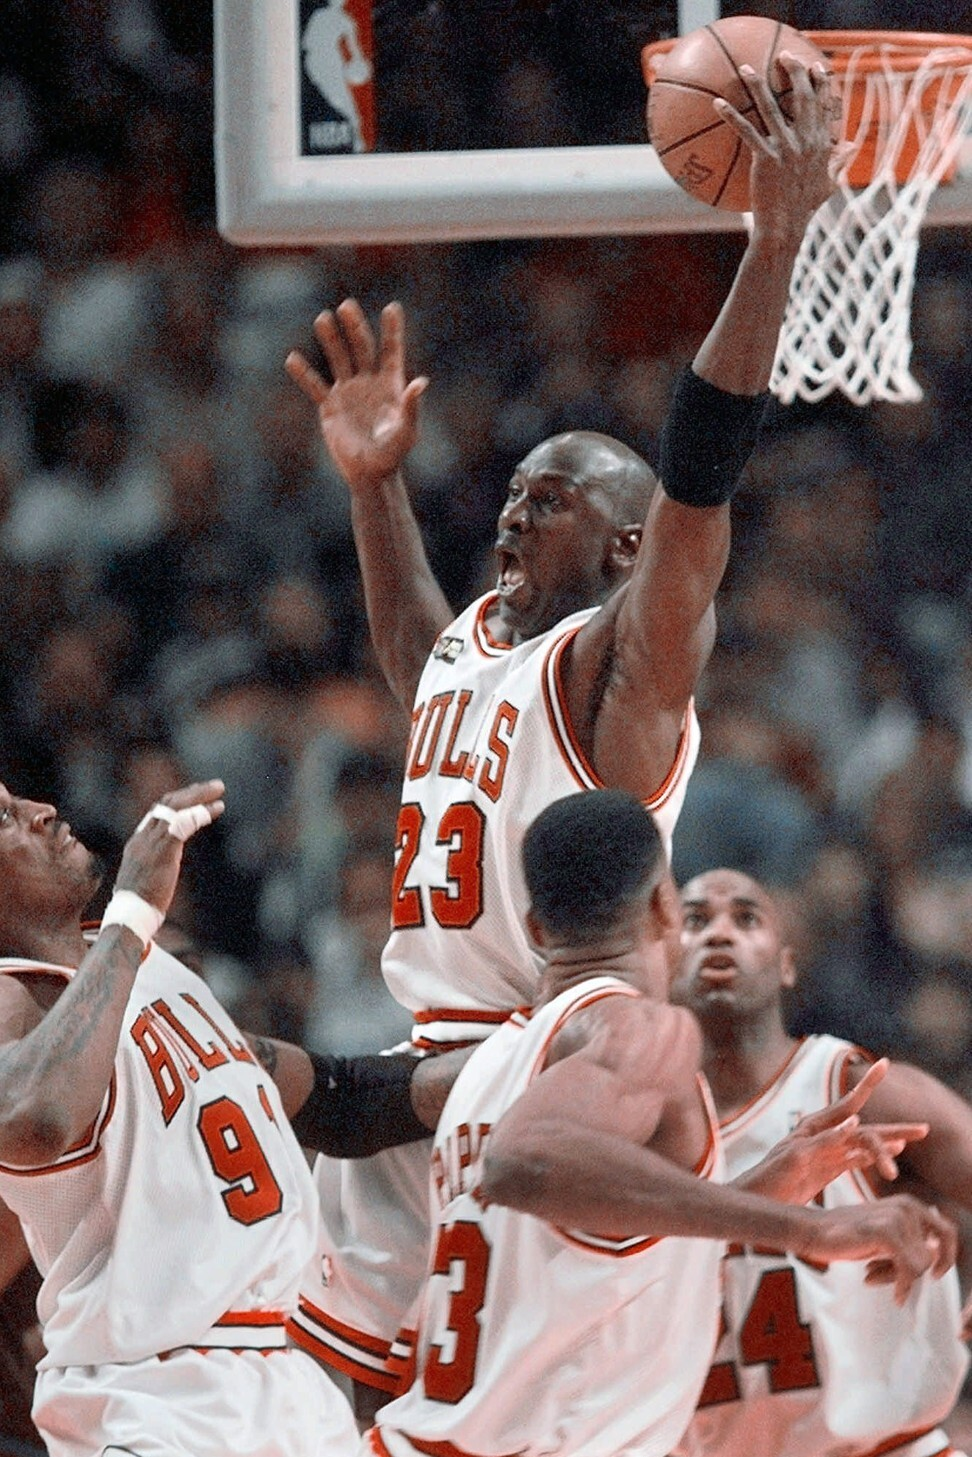 Michael Jordan, LeBron James, Muhammad Ali or Babe Ruth – who is the real GOAT?